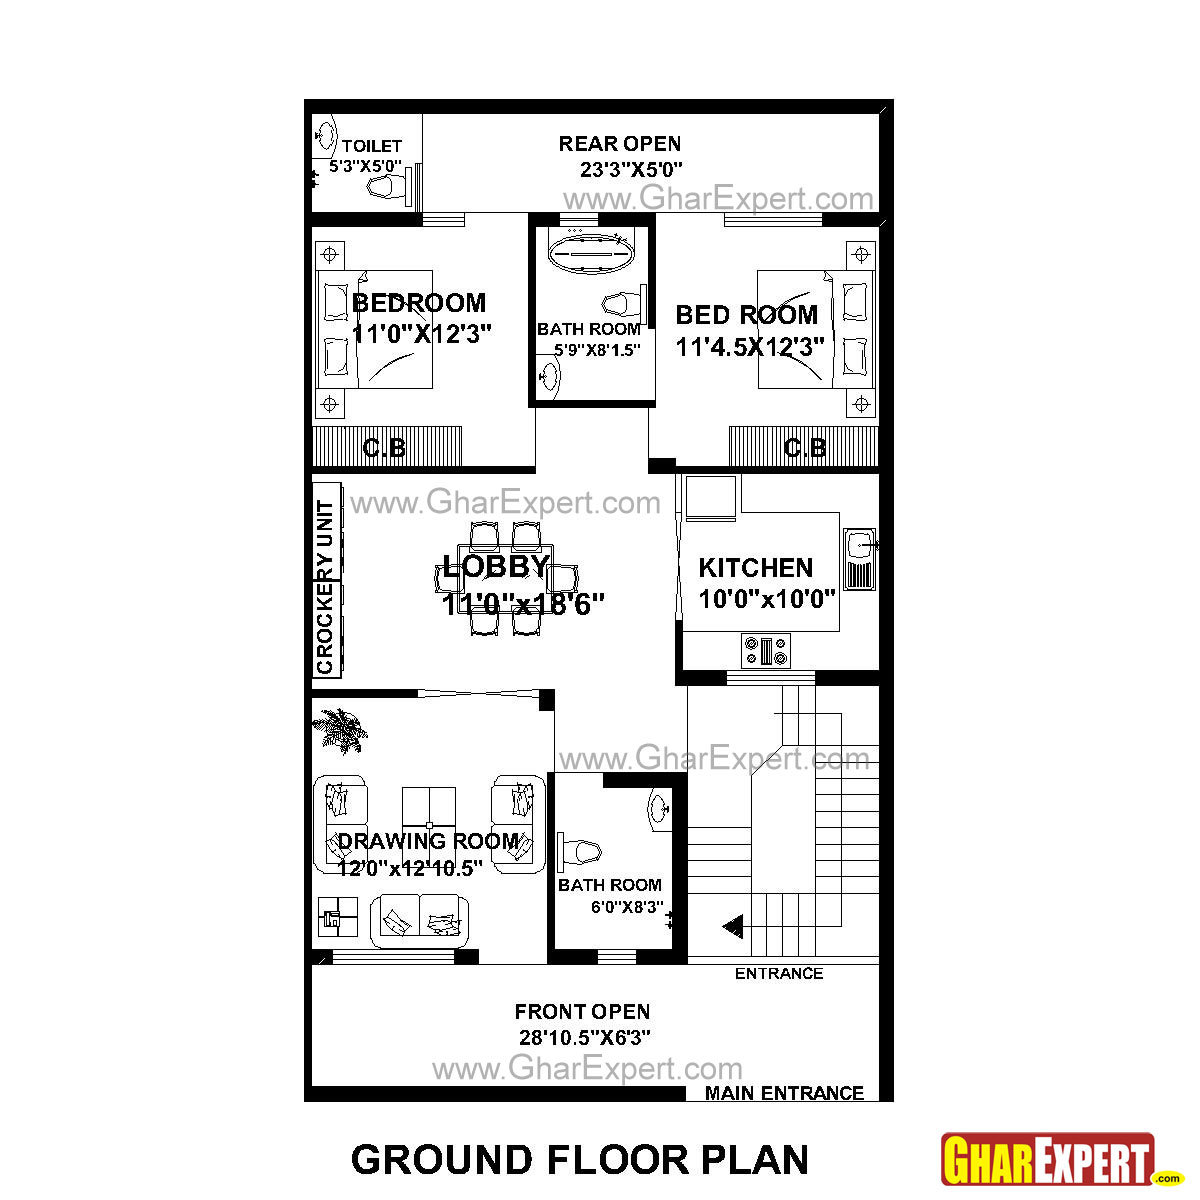 House Plan for 30 Feet by 51 Feet plot (Plot Size 170